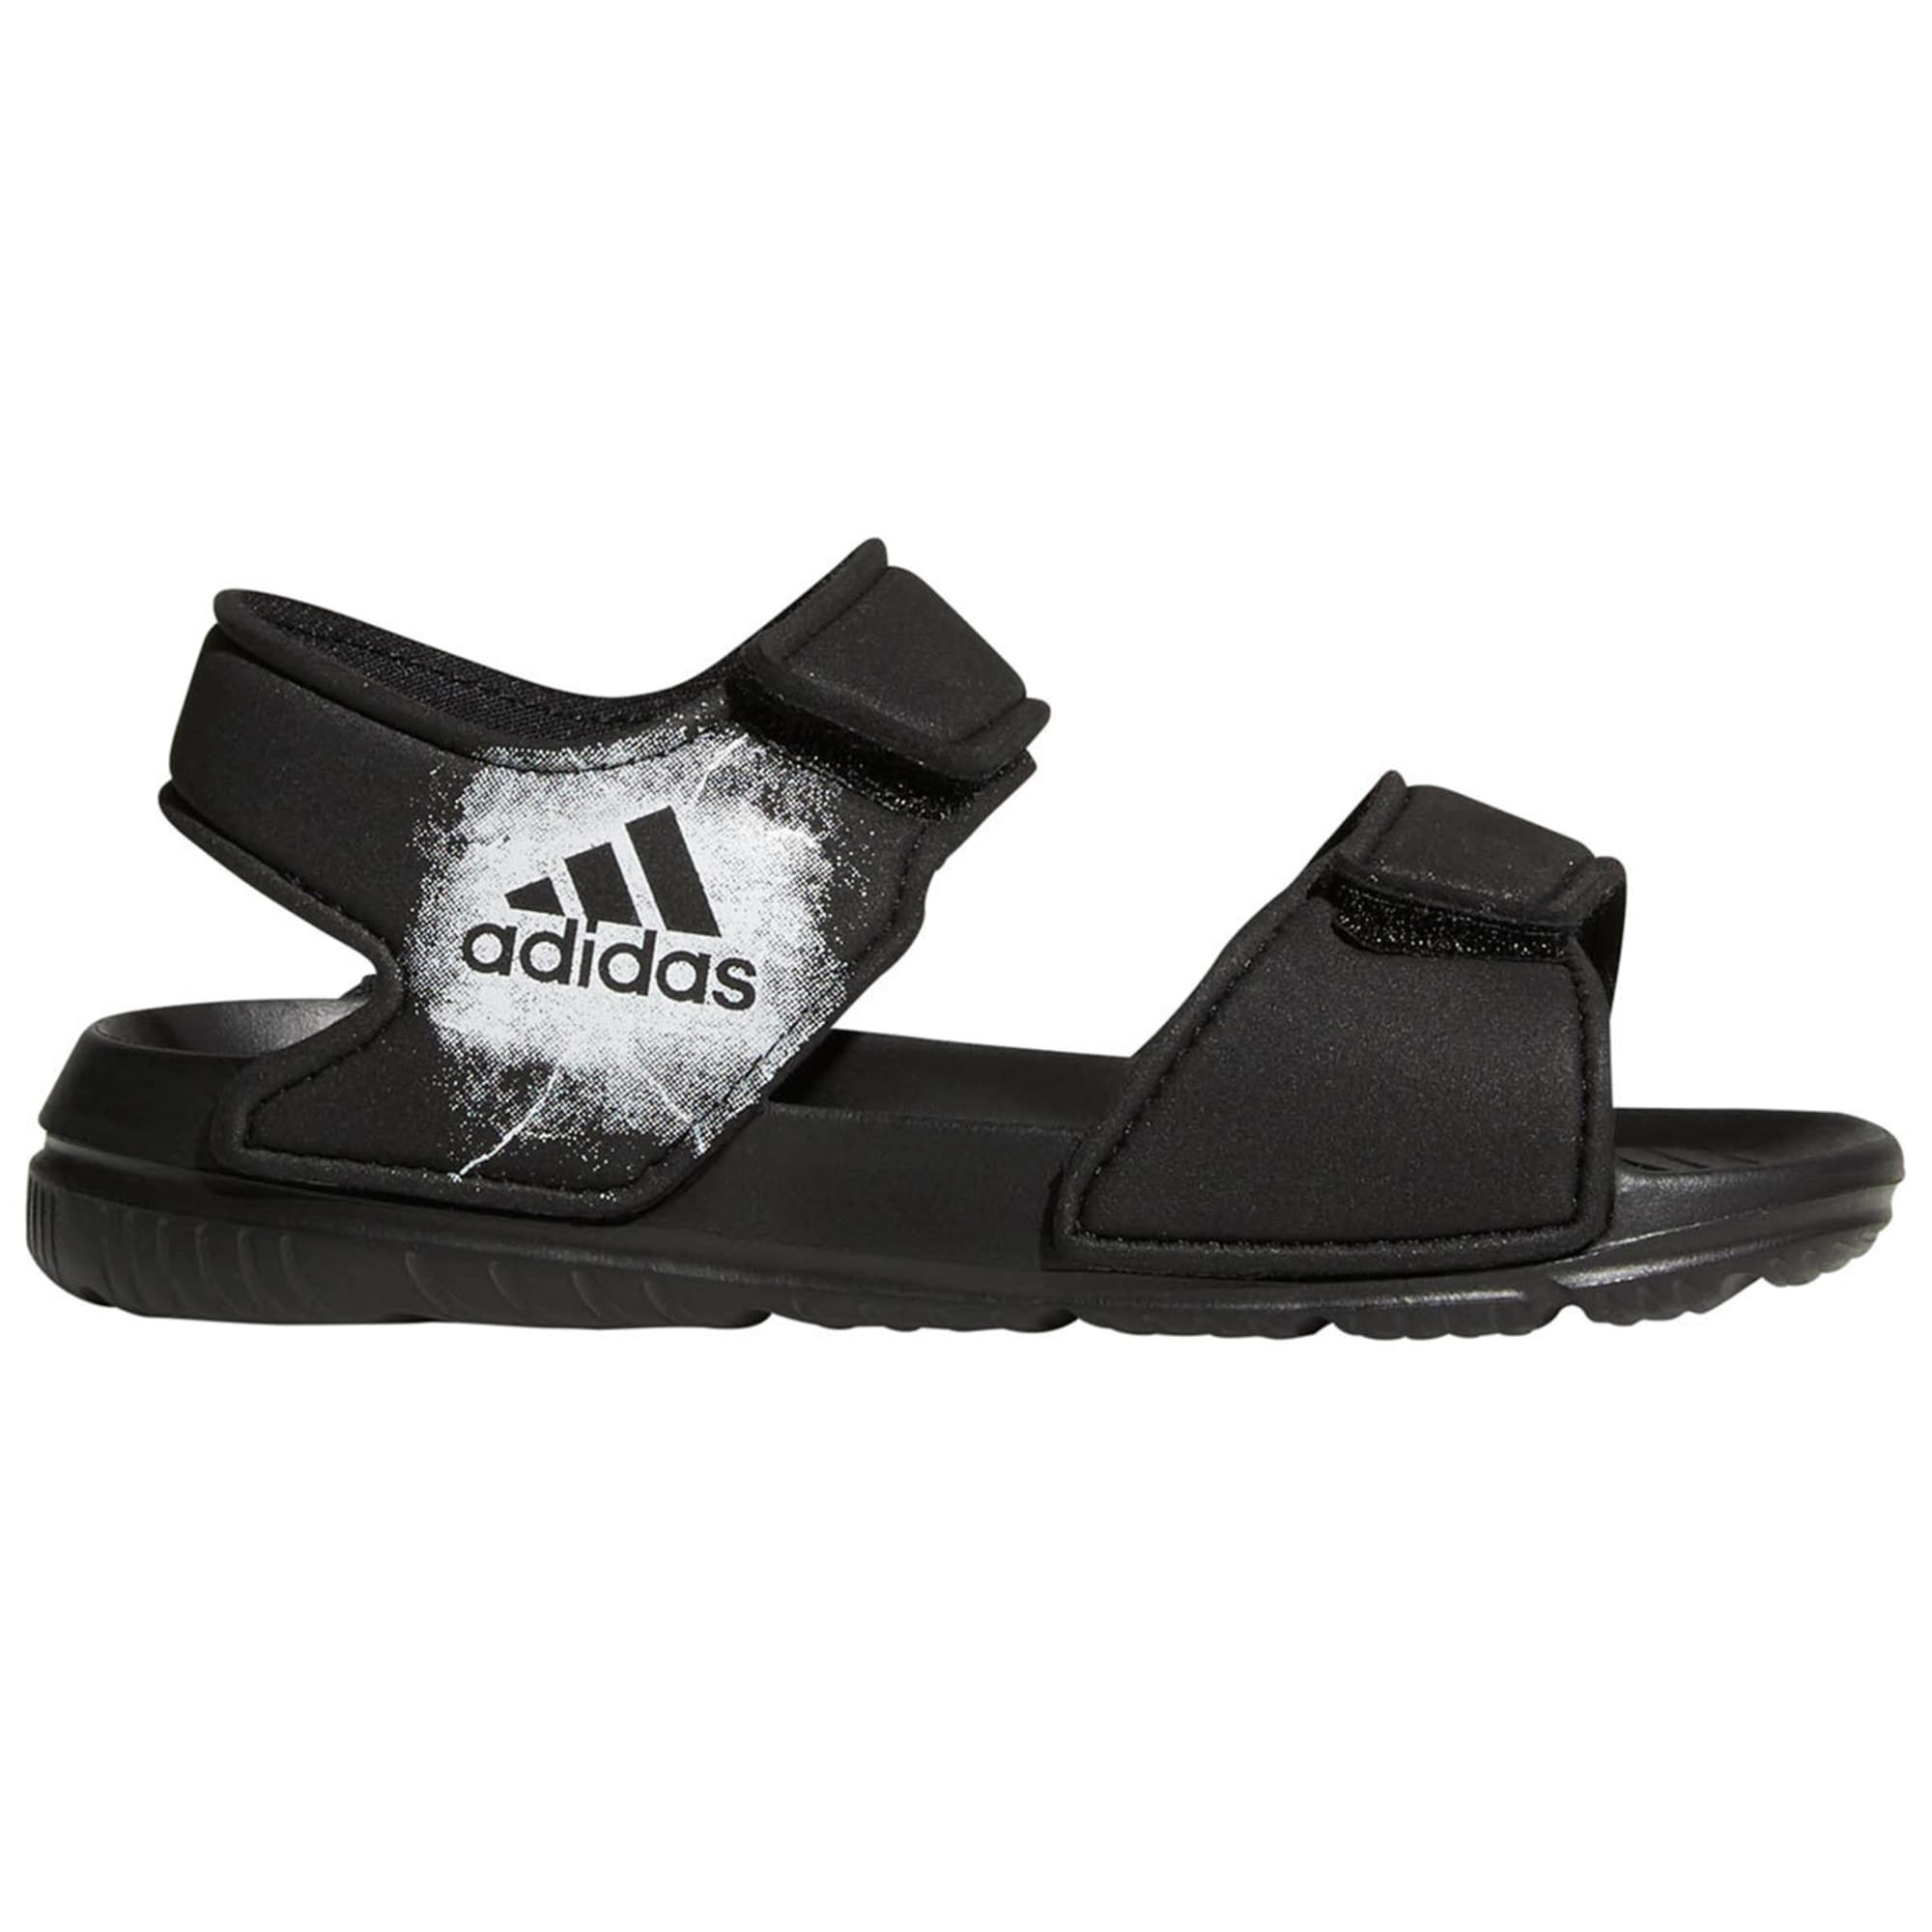 ADIDAS Toddler Alta Swim I Sandals